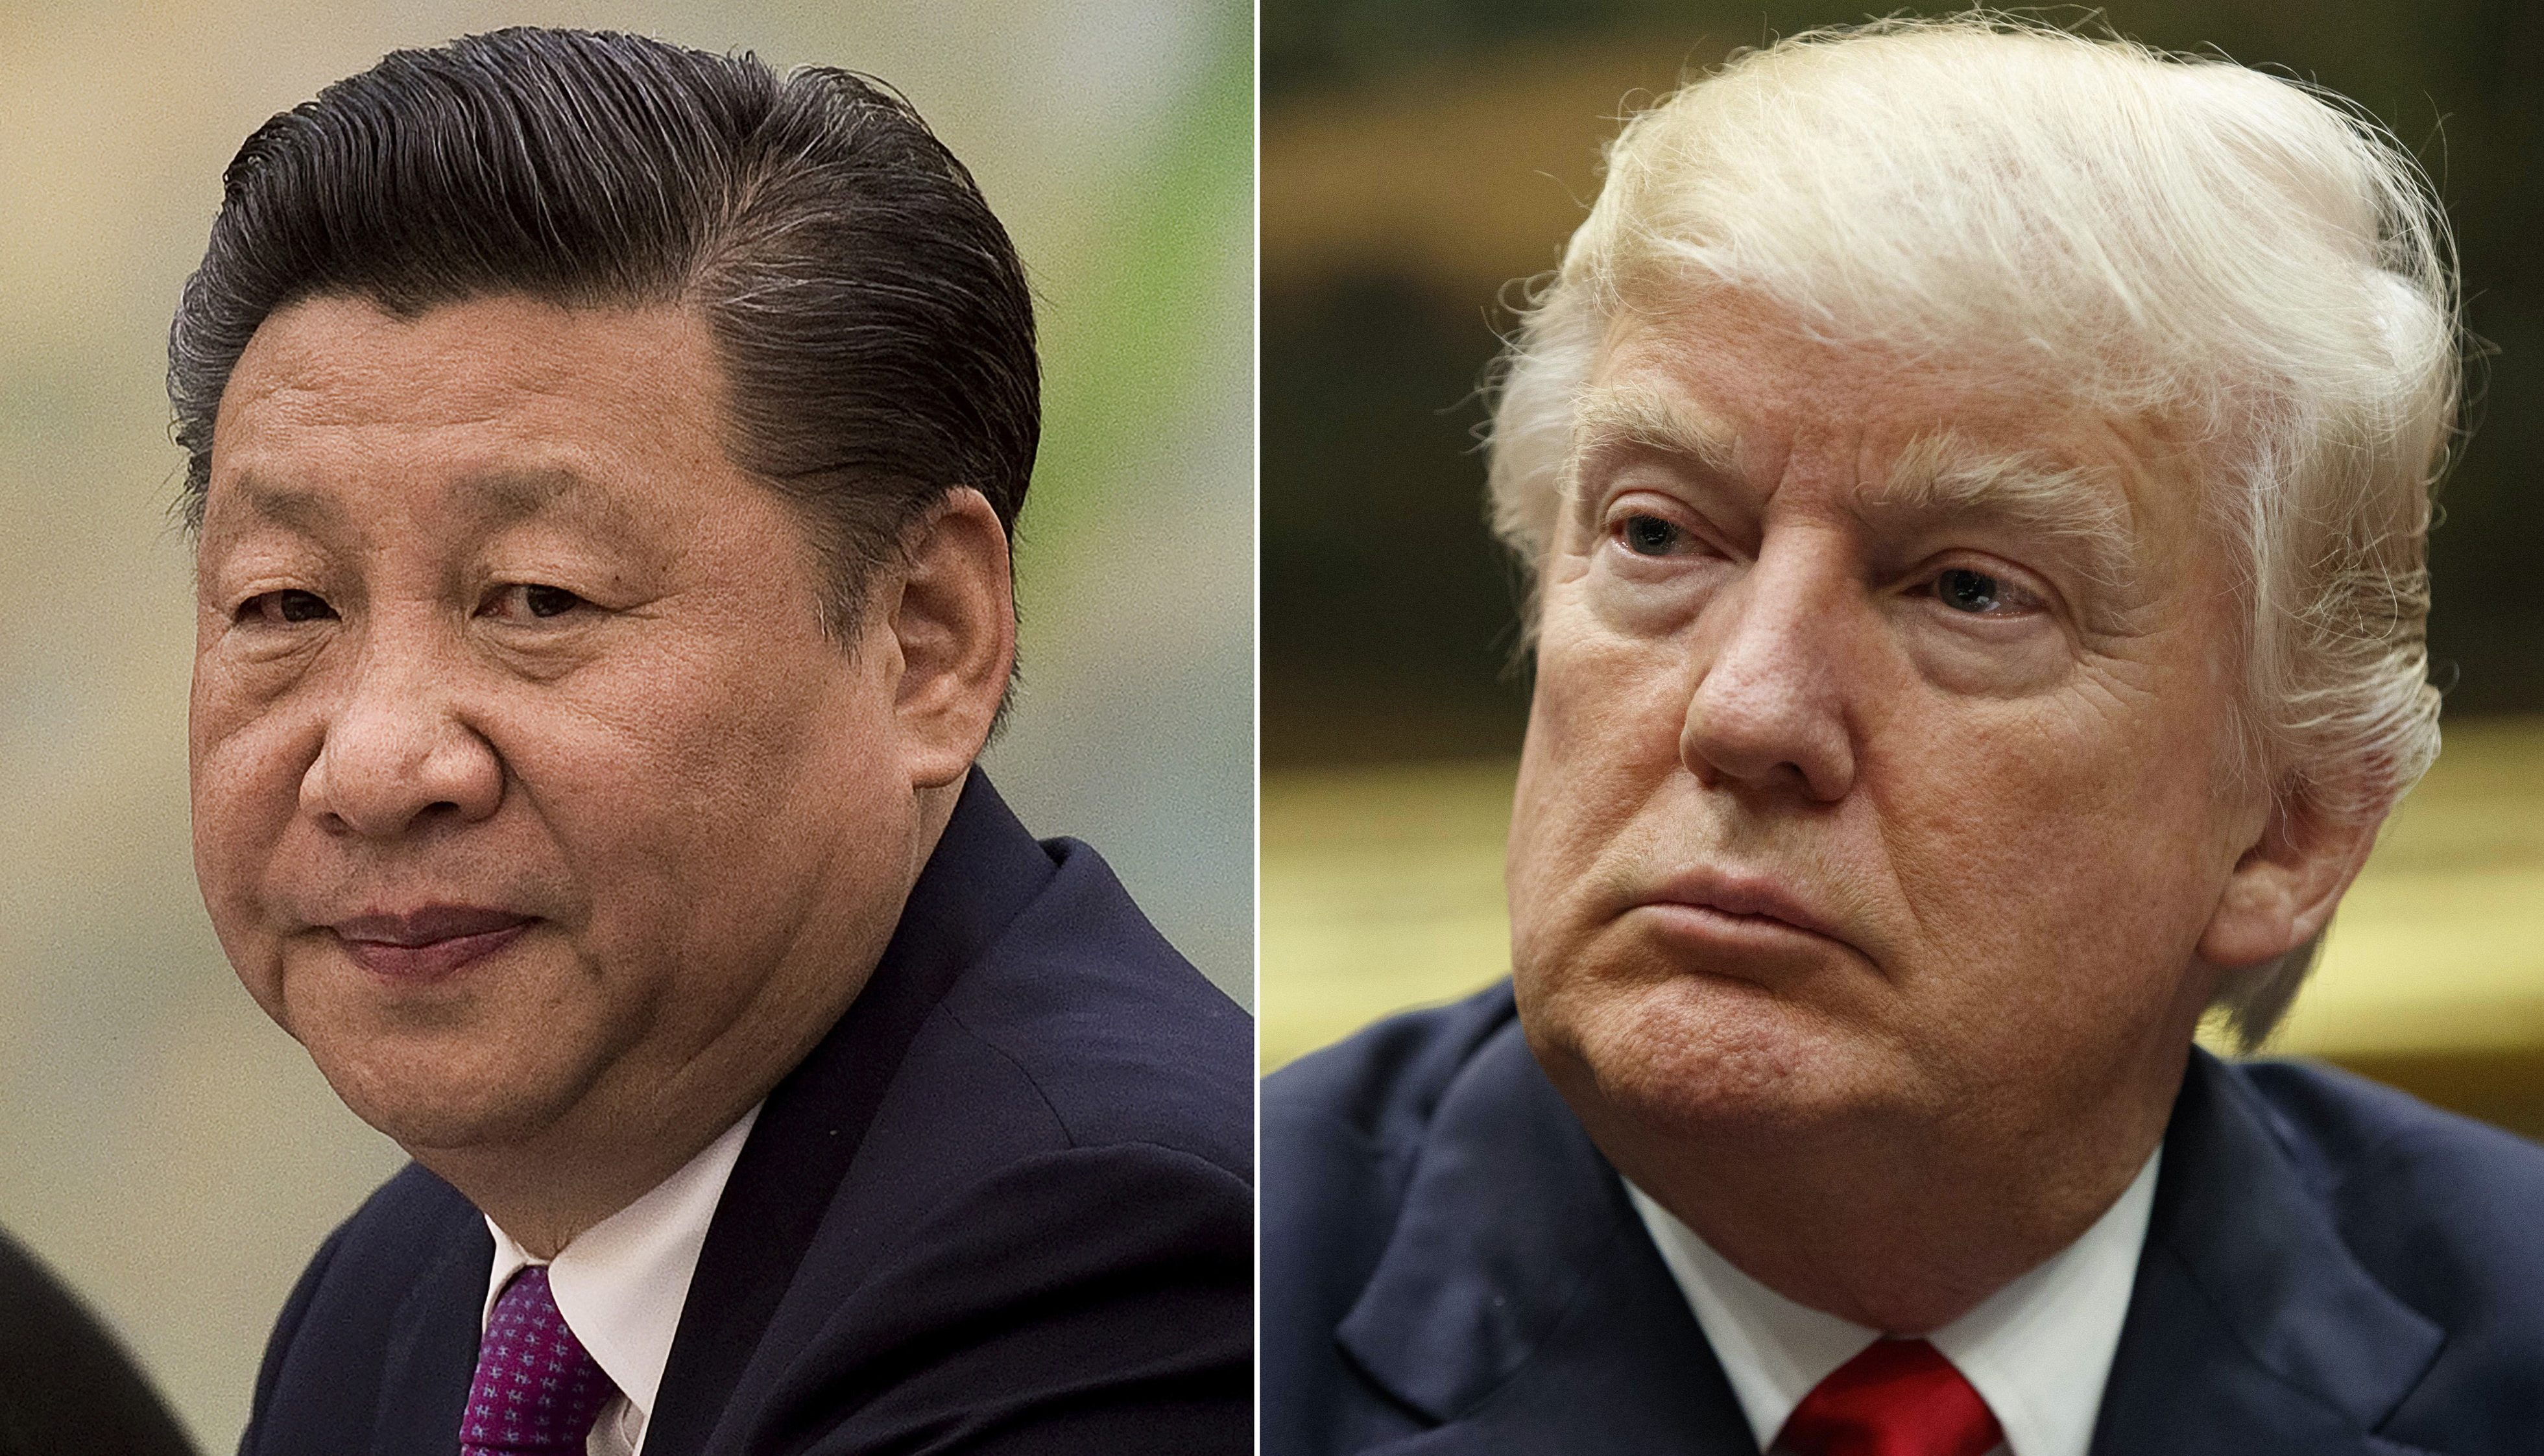 This combination of file photos show U.S. President Donald Trump, right, in a meeting at the White House in Washington, on March 31, 2017, and China's President Xi Jinping in a meeting at the Great Hall of the People in Beijing, on Dec. 1, 2016. President Xi probably won't give President Trump a round of golf during their first face-to-face meeting on April 6-7, but may find it worthwhile to ensure his American counterpart does not feel like he's leaving empty-handed. Some analysts believe Xi might be willing to hand Trump a symbolic victory on trade to put a positive spin on the meeting.